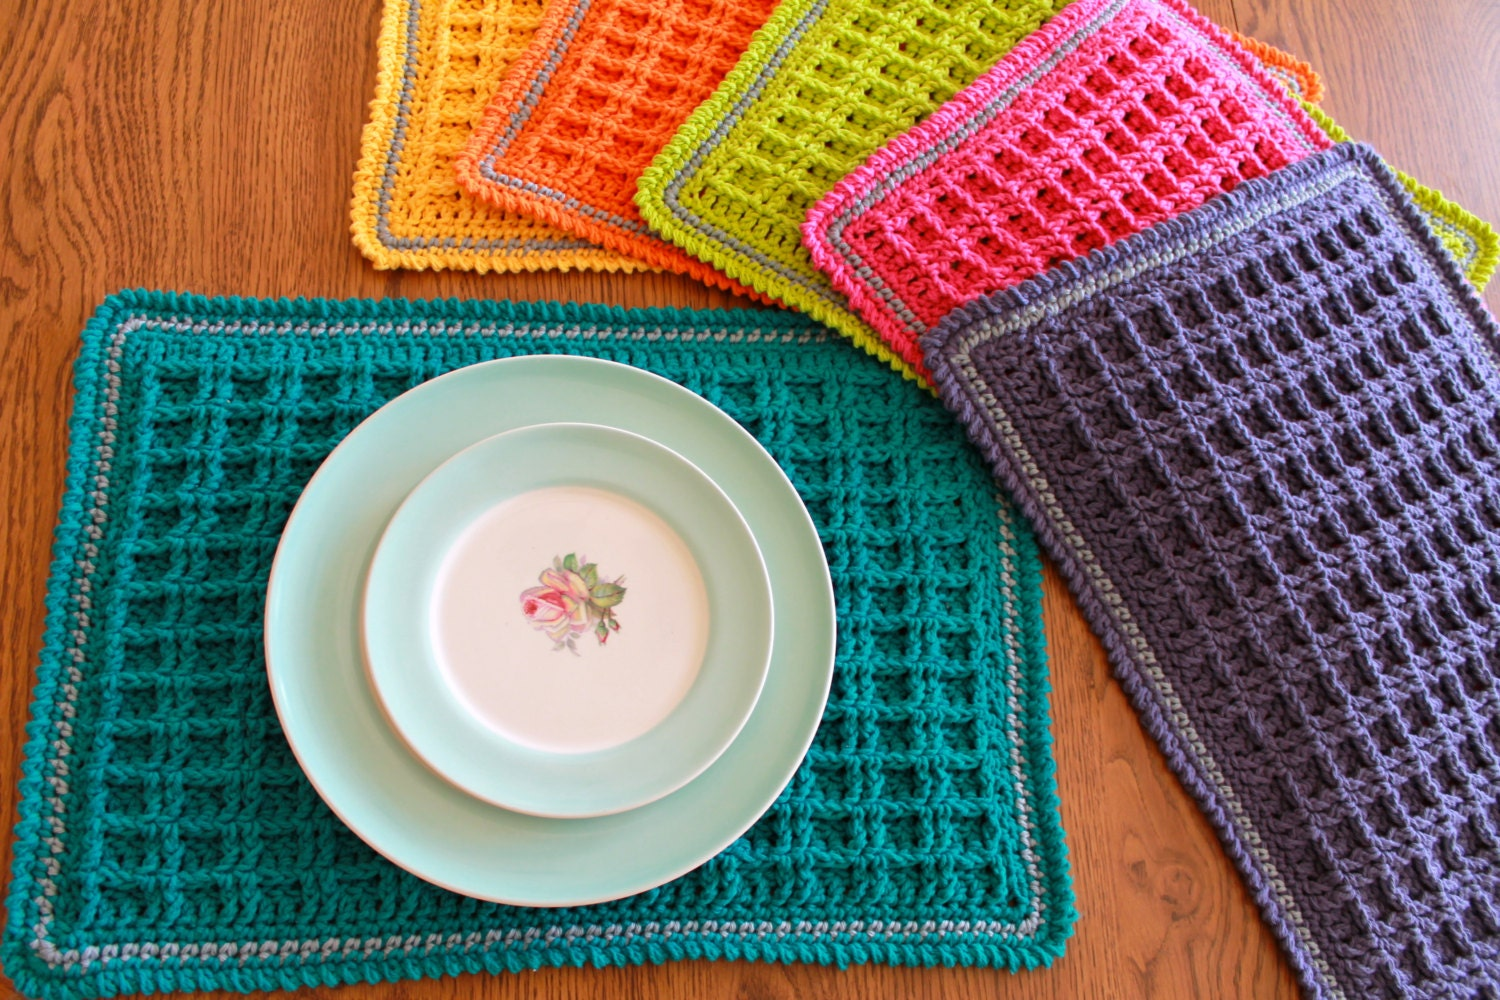 Crochet placemat pattern waffle stitch crochet placemat zoom bankloansurffo Image collections